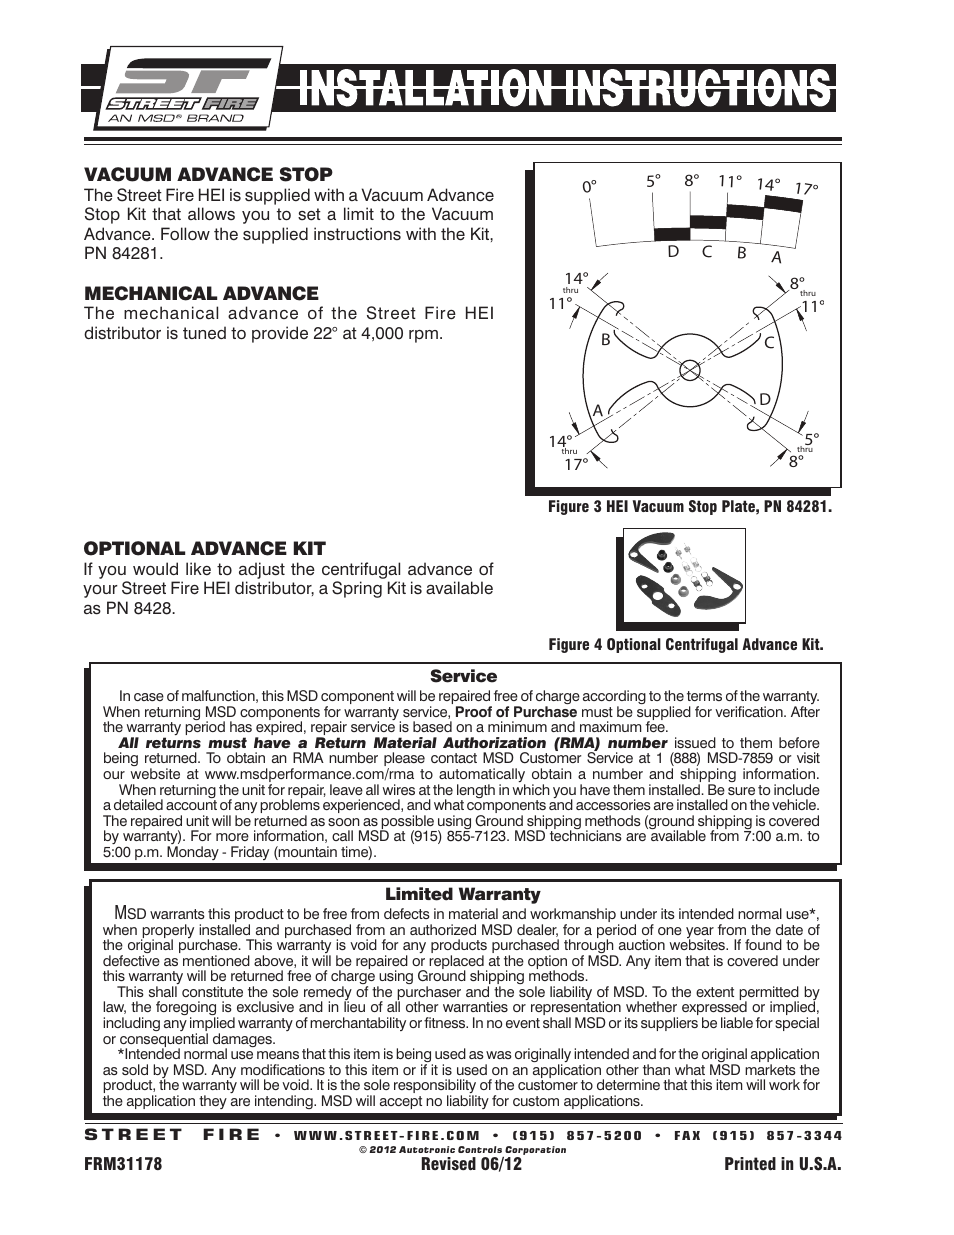 MSD 8362 Street Fire Chevrolet V8 GM HEI Distributor Installation User  Manual | Page 2 / 2